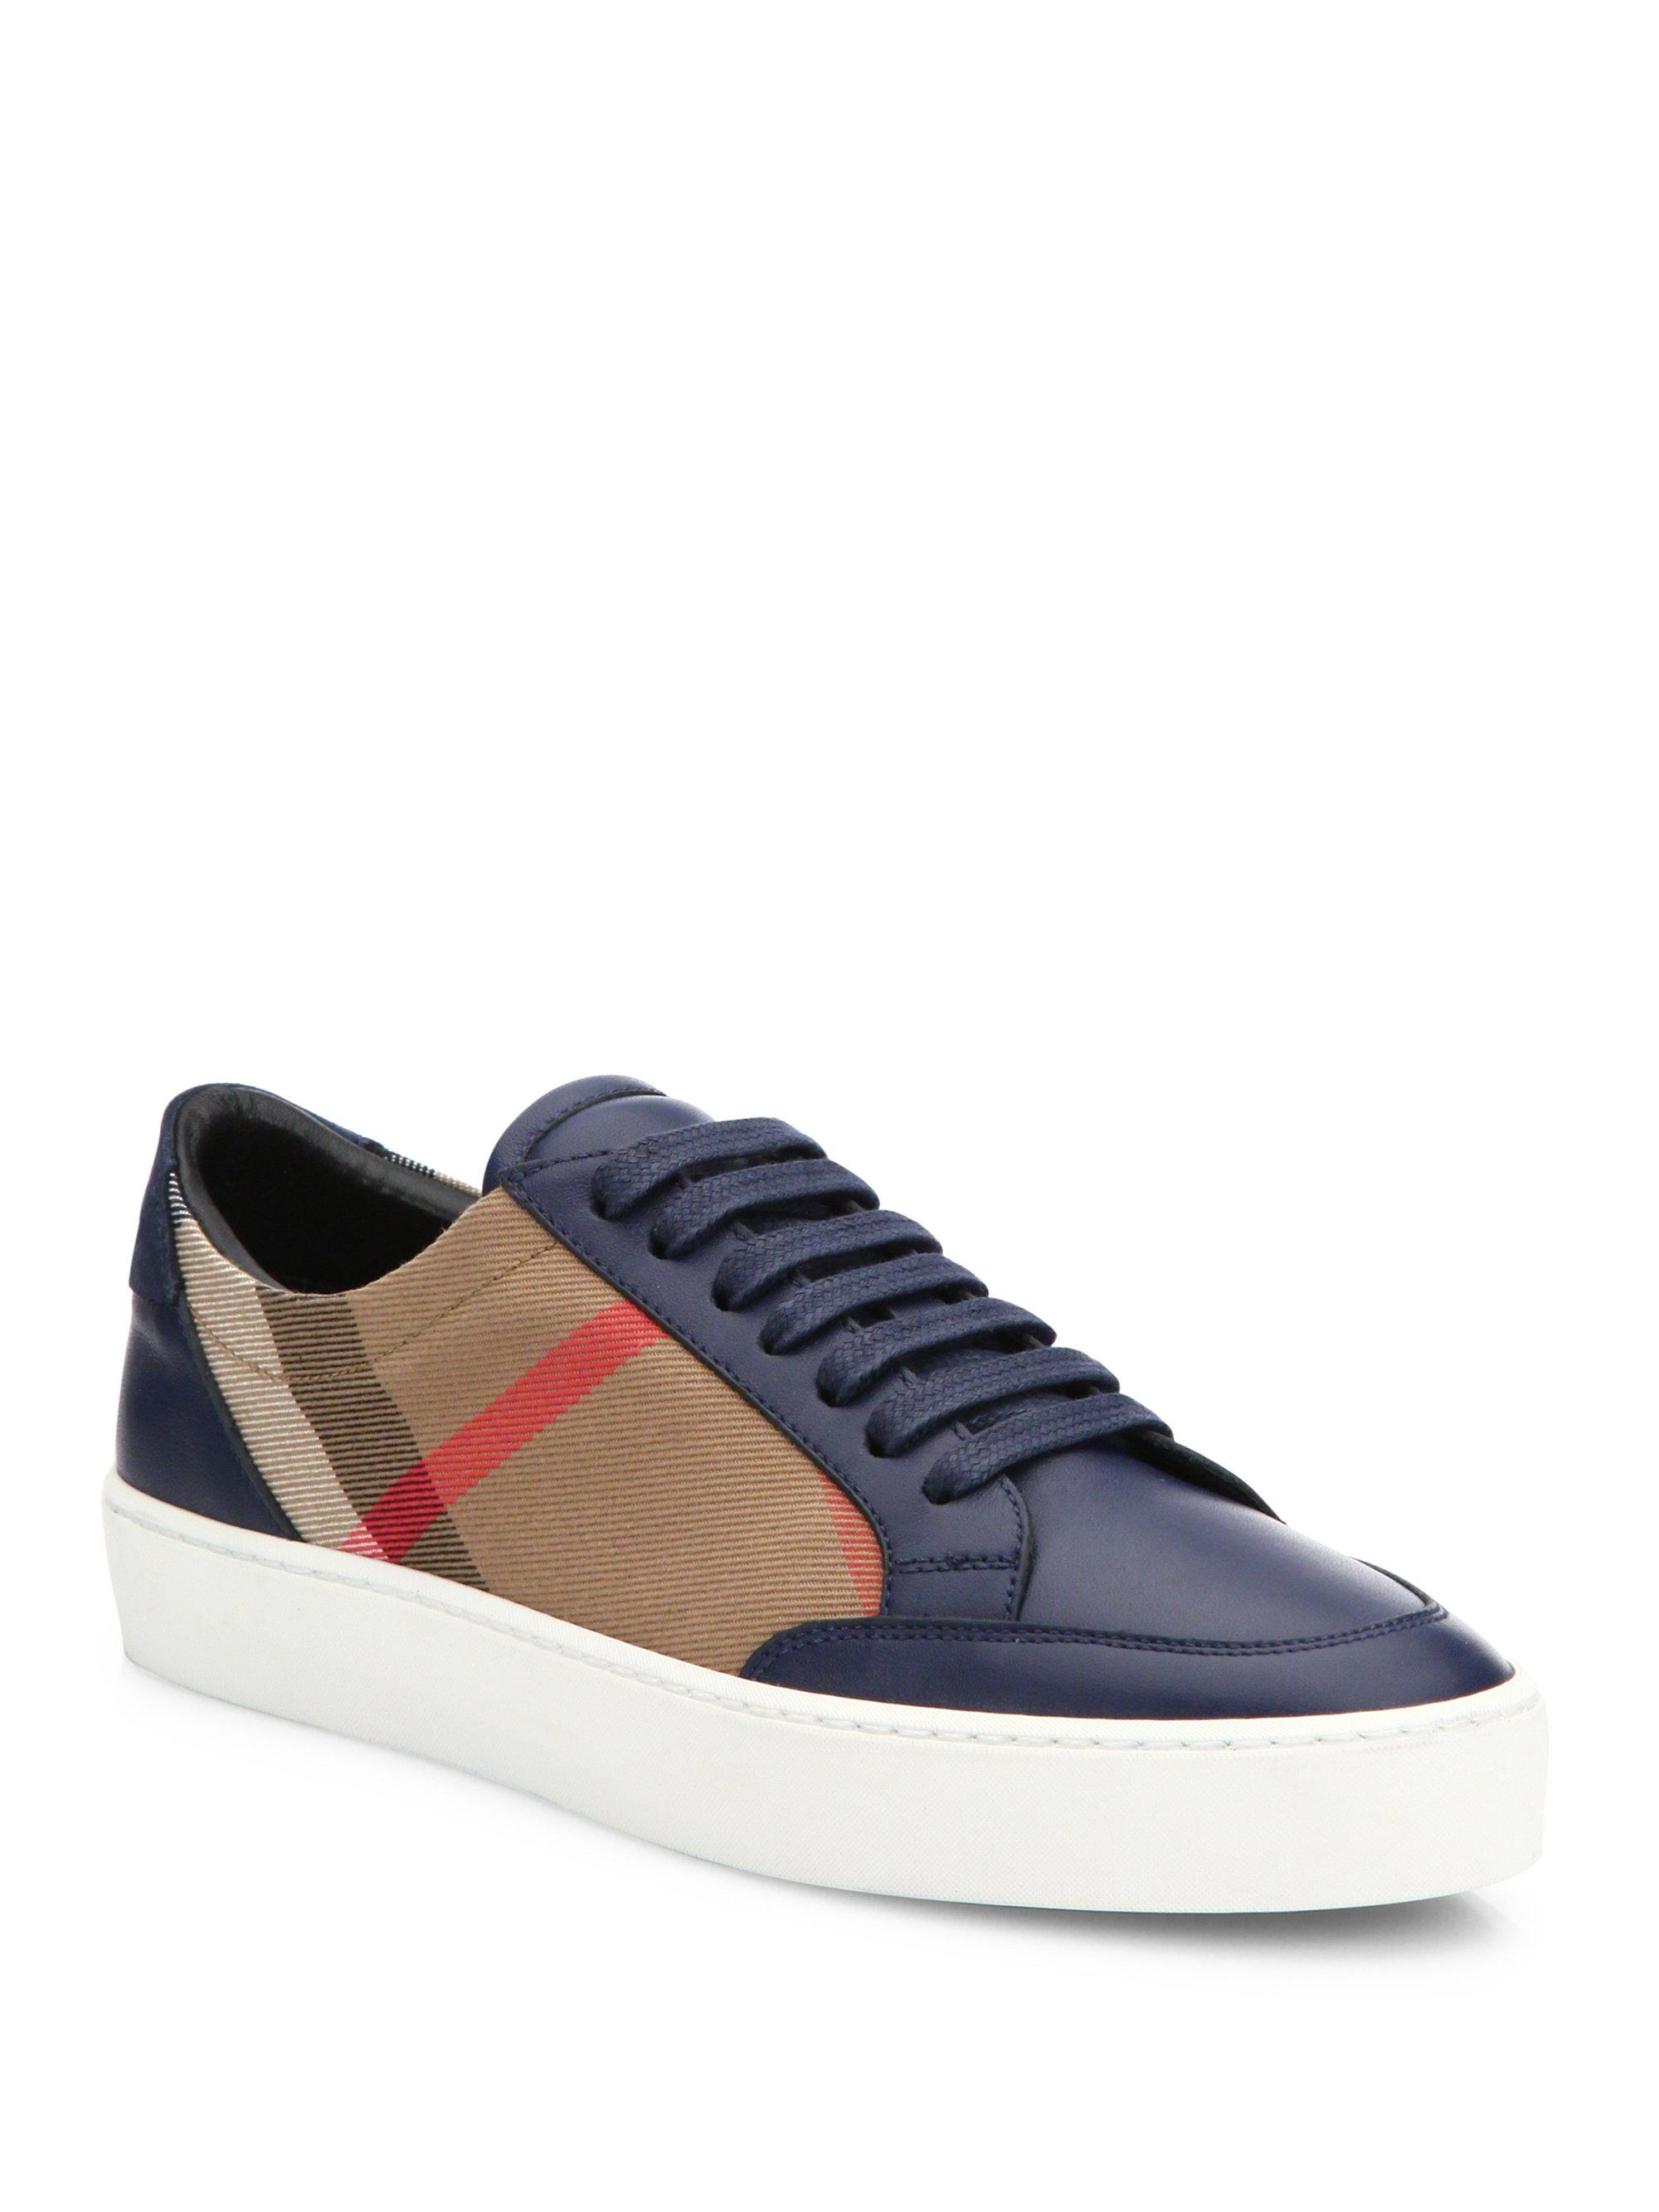 Lyst Burberry Salmond House Check Amp Leather Sneakers In